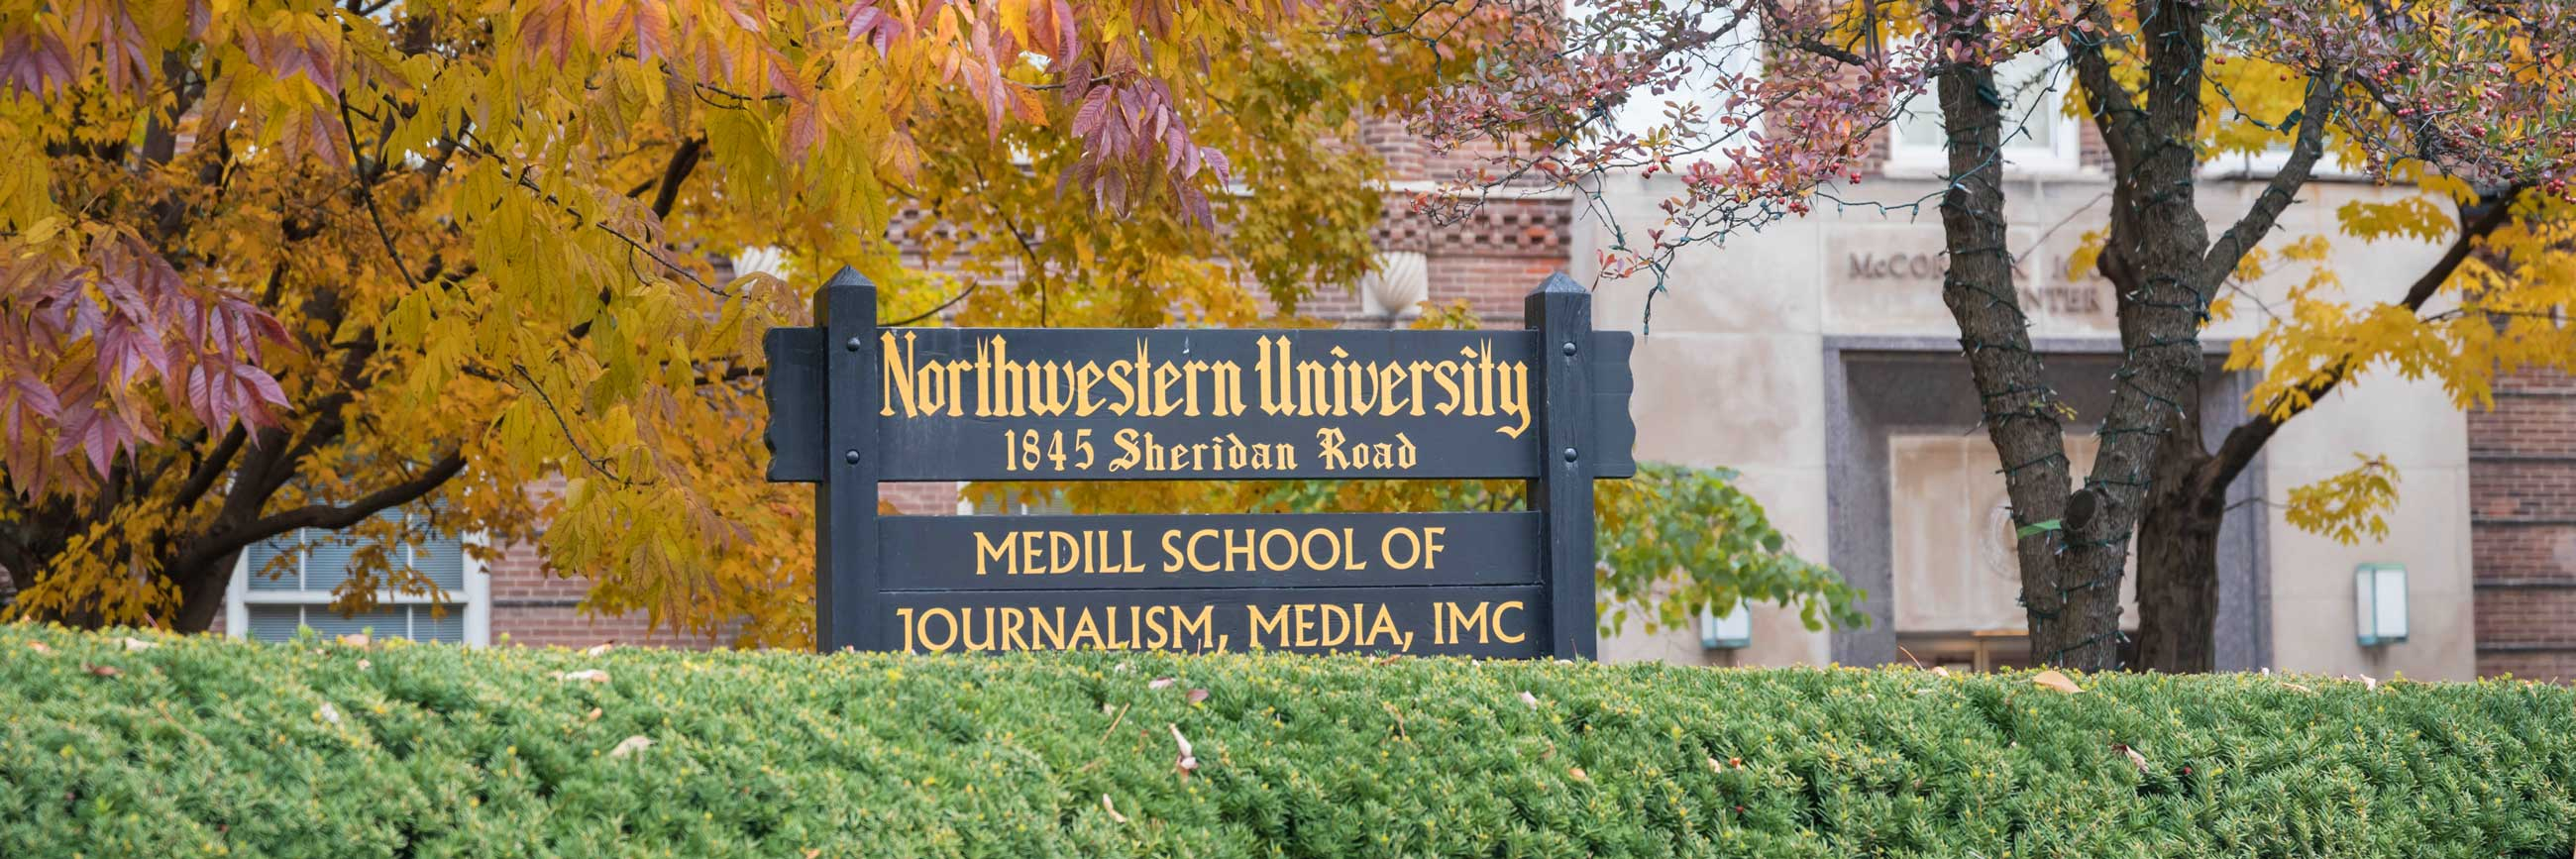 "A brick building with trees and a sign that says ""Medill School of Journalism Media IMC"""